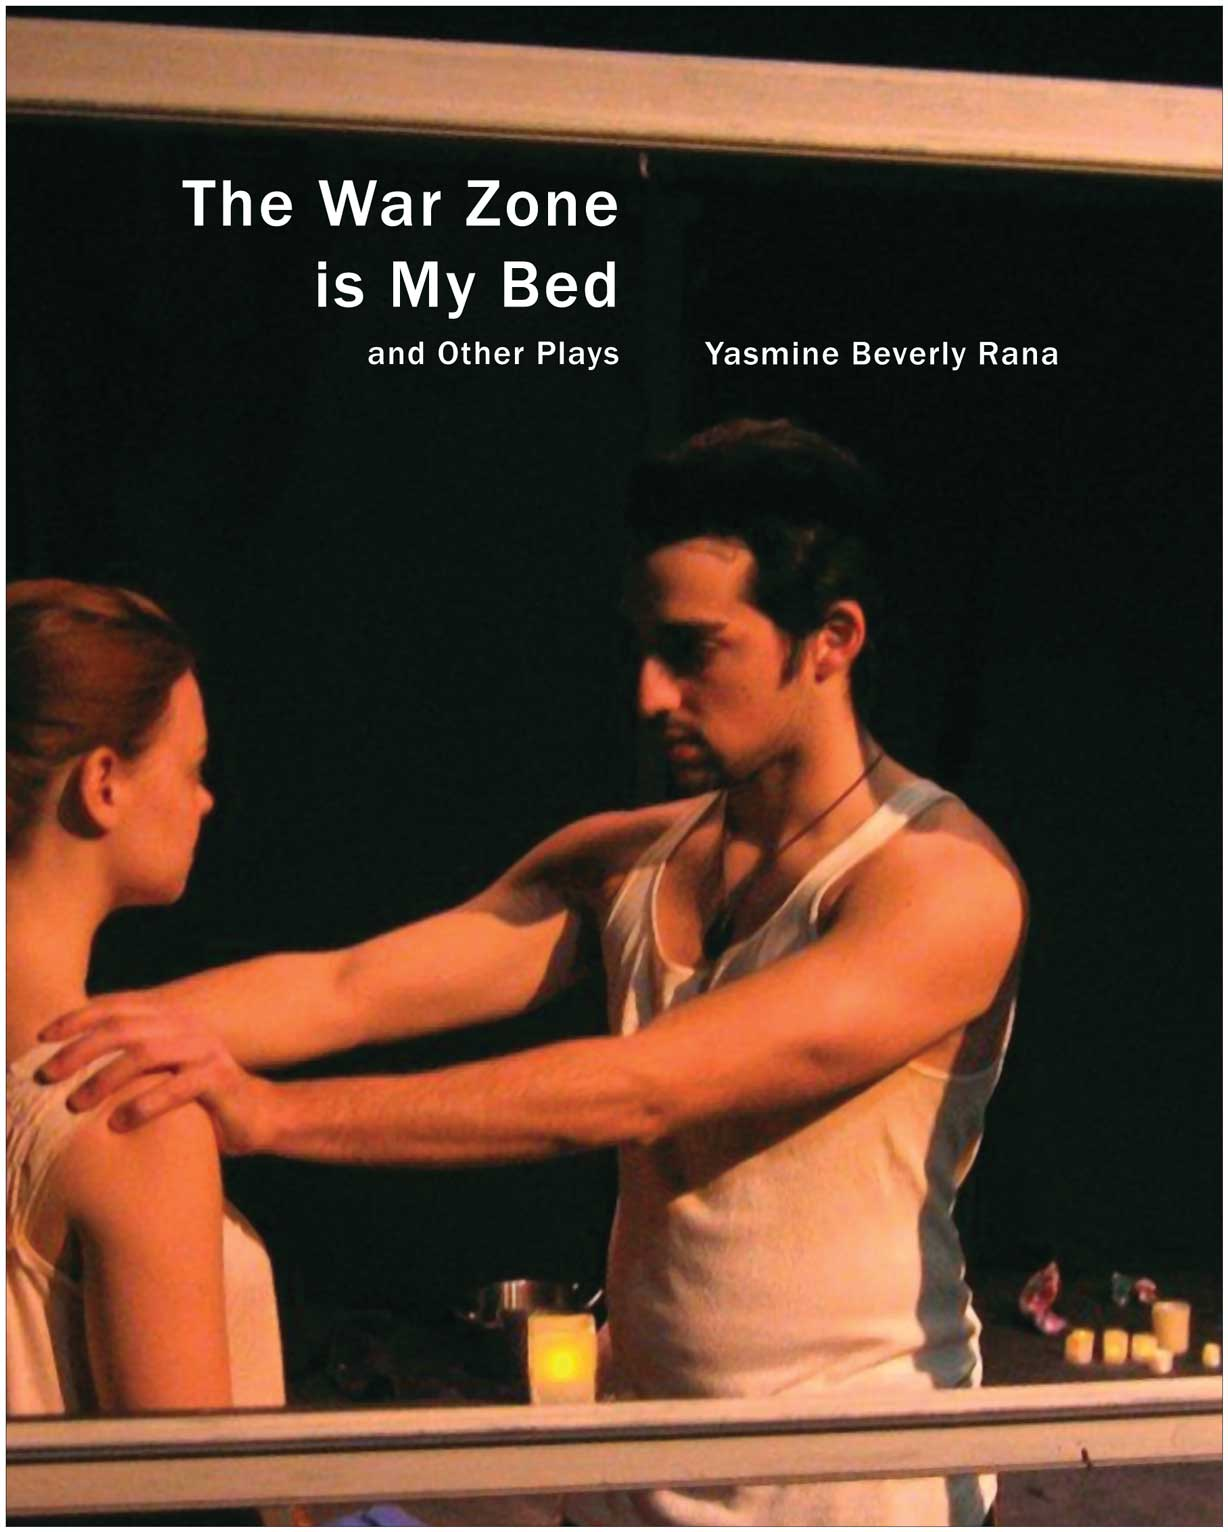 The War Zone Is My Bed: and Other Plays by Yasmine Beverly Rana | Seagull Books